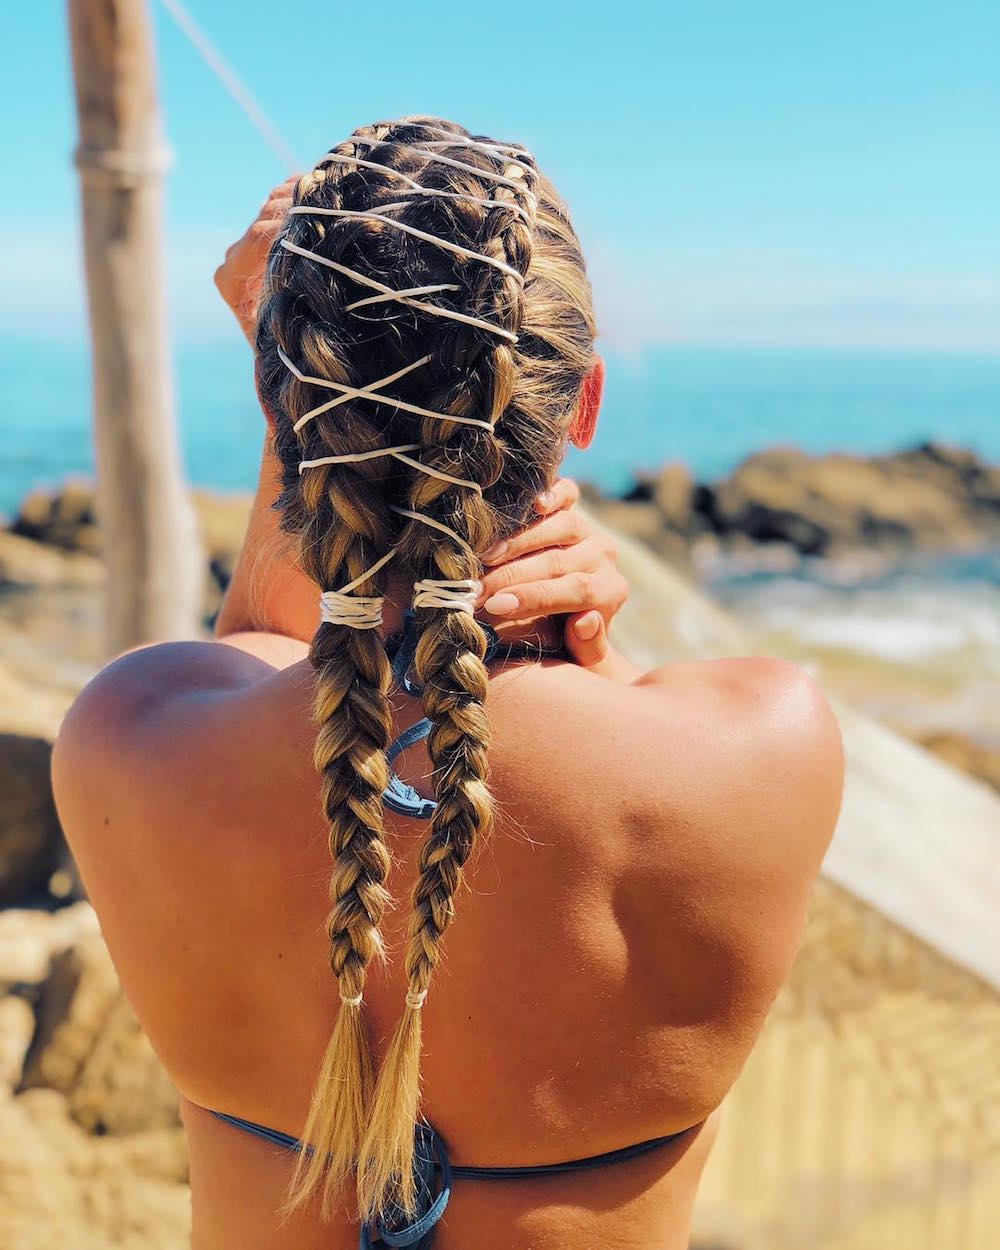 12 Braided Hairstyles to Keep You Cool During the Summer Heat Wave